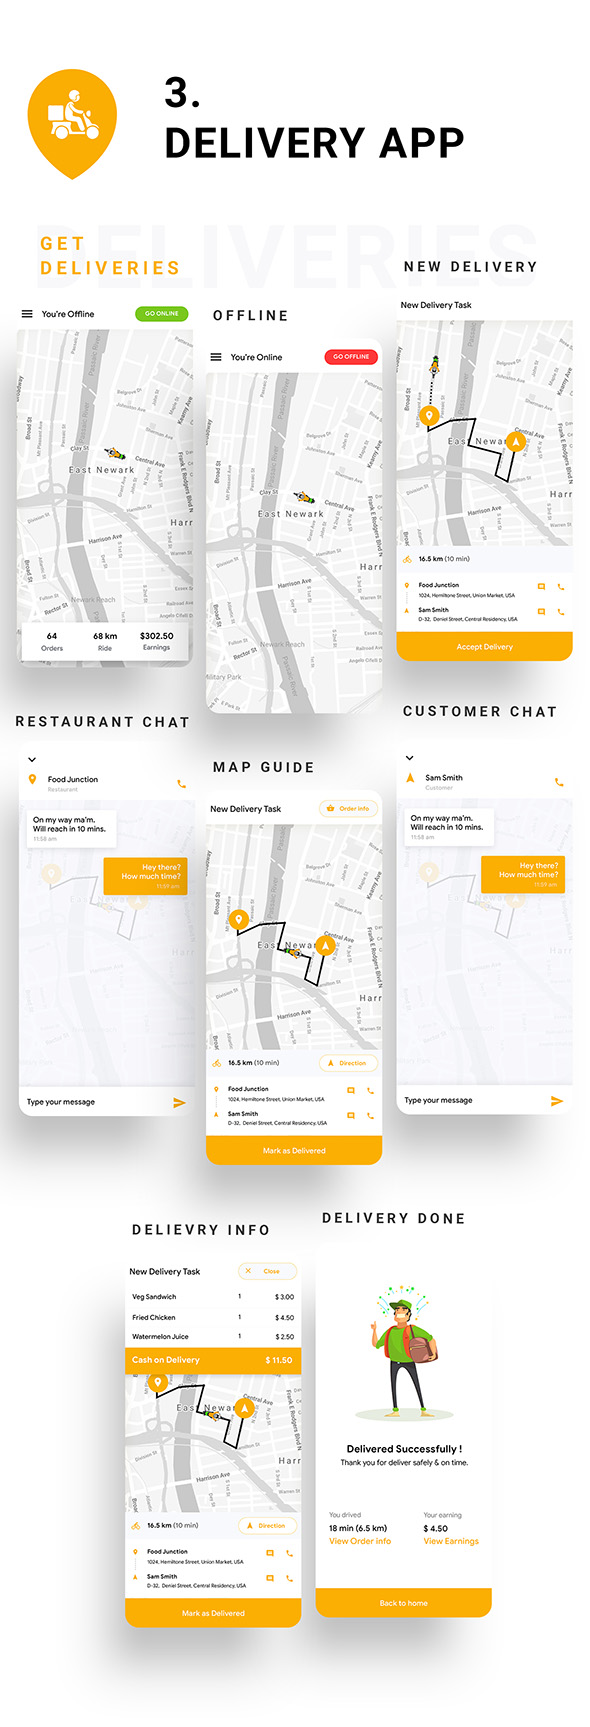 6 in 1 multi Restaurant Food Ordering App|Food Delivery App|Android+iOS App Template|Flutter Hungerz - 11